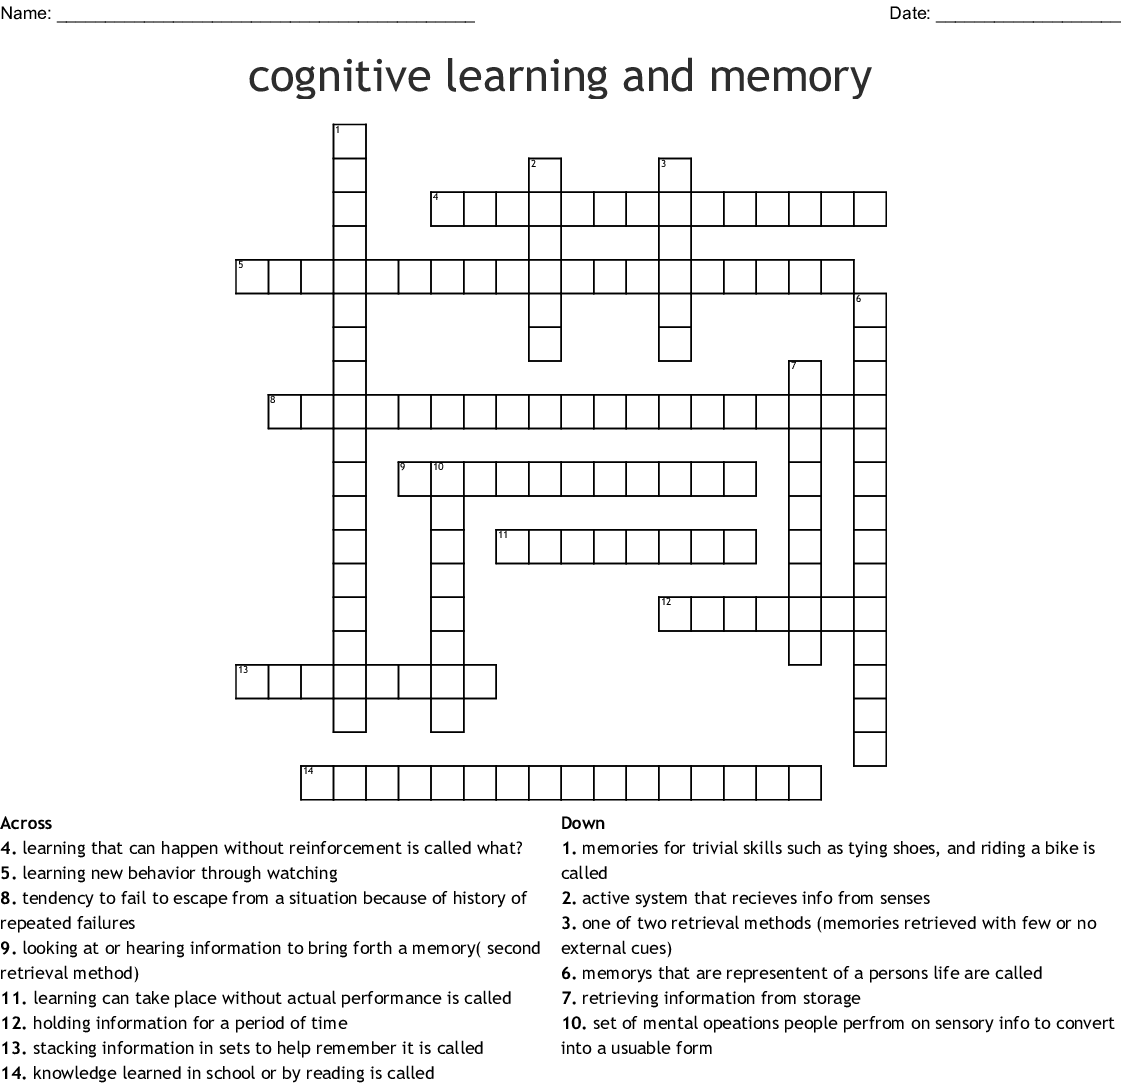 Cognitive Learning And Memory Crossword Wordmint